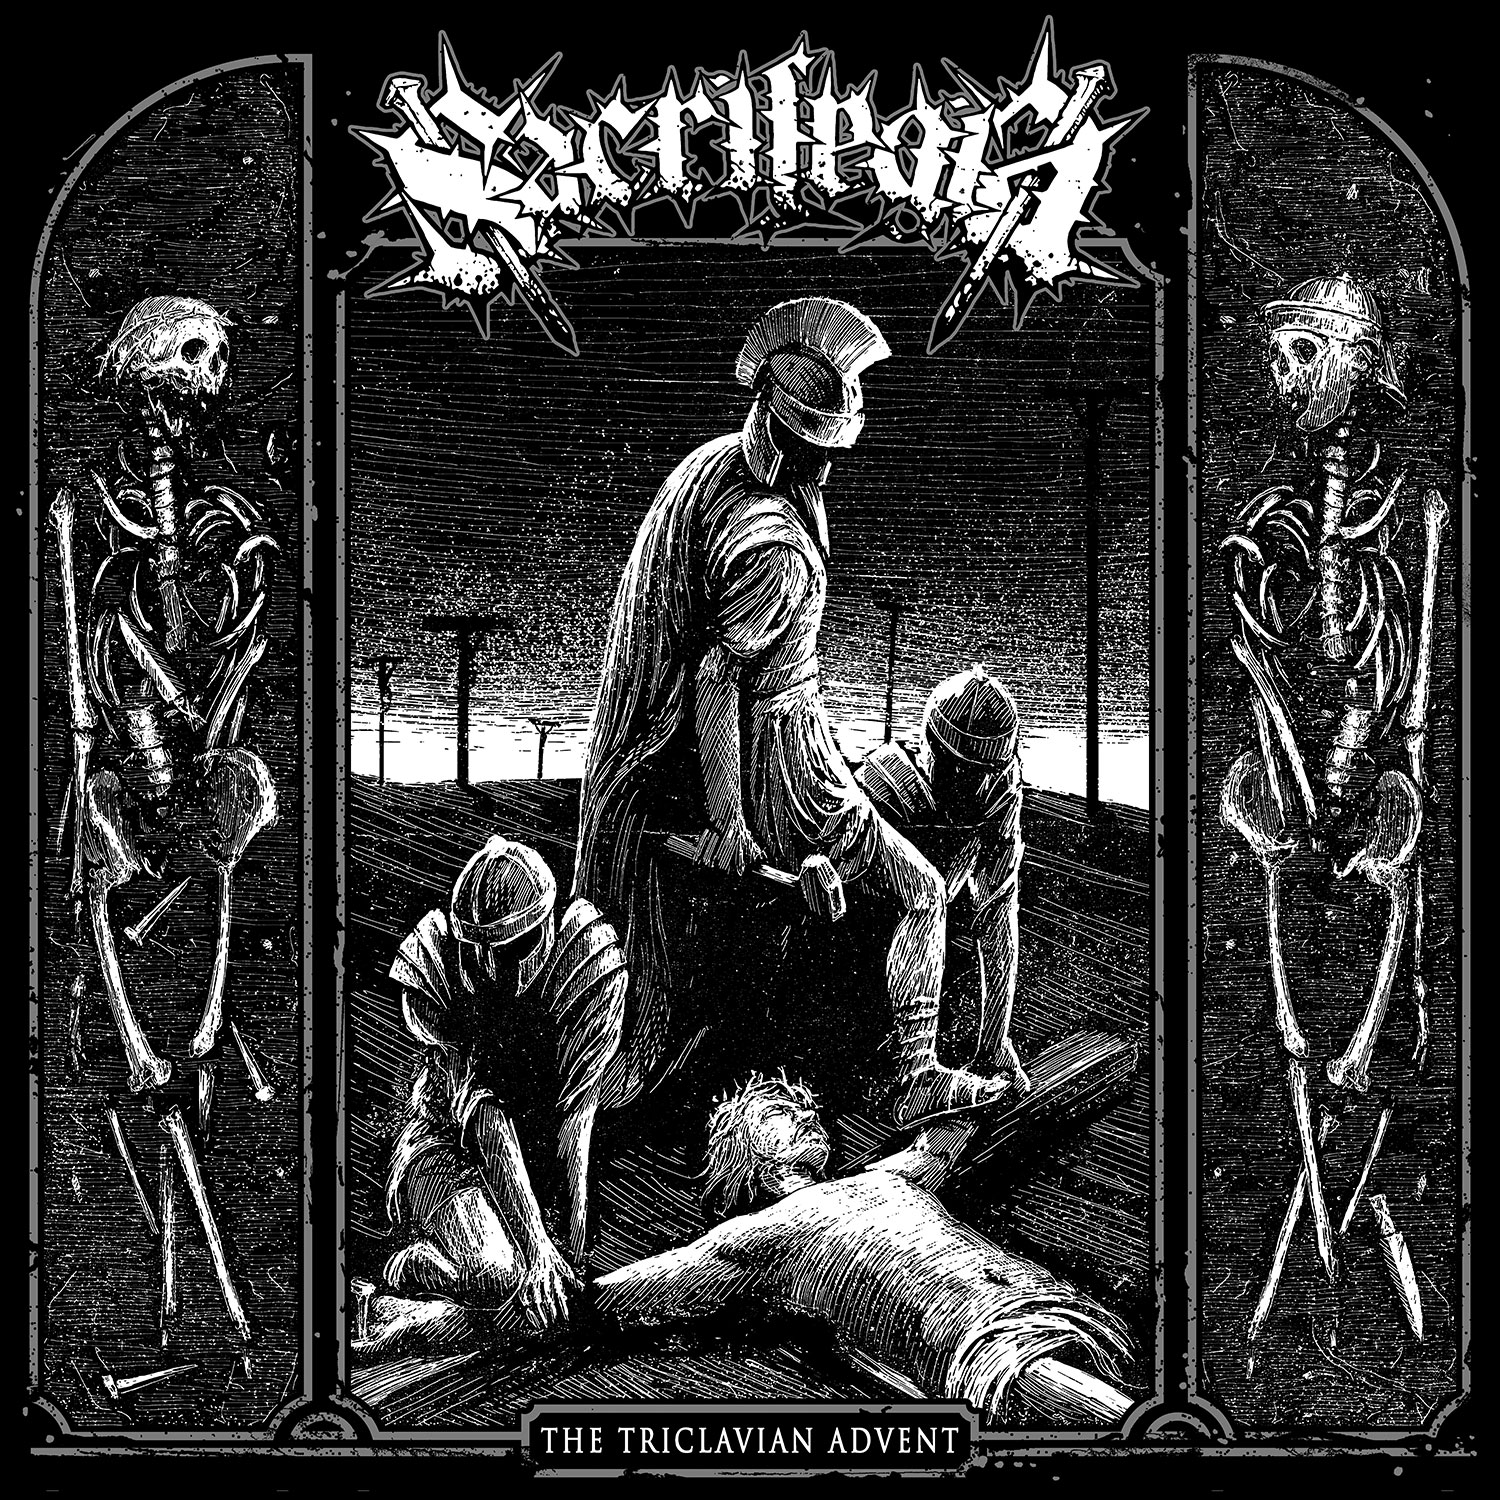 Sacrilegia - The Triclavian Advent - Press Release + Track Stream.